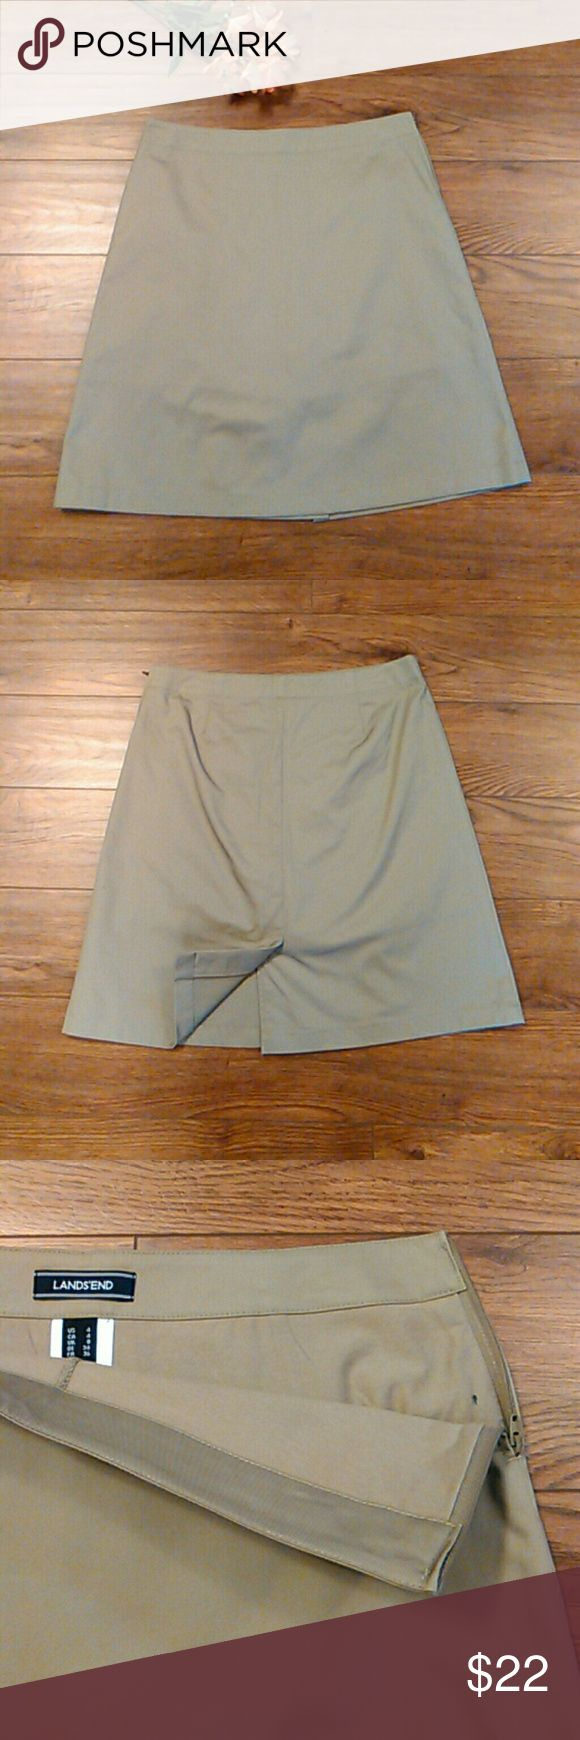 """NWOT Land End Tan Chino Skort Size 4 NWOT Land End Tan Chino Skort Size 4  Kick Vent in Back Side Zipper No Pockets  60% Cotton 40% Polyester  Aprox Measurements Taken Flat  Waist: 15.5""""(31) Length:20""""  In Pre-Owned Condition With No Stains Or Holes.  Smoke and Pet Free Home  Please Check Out My Other Items  #216 Lands' End Shorts Skorts"""